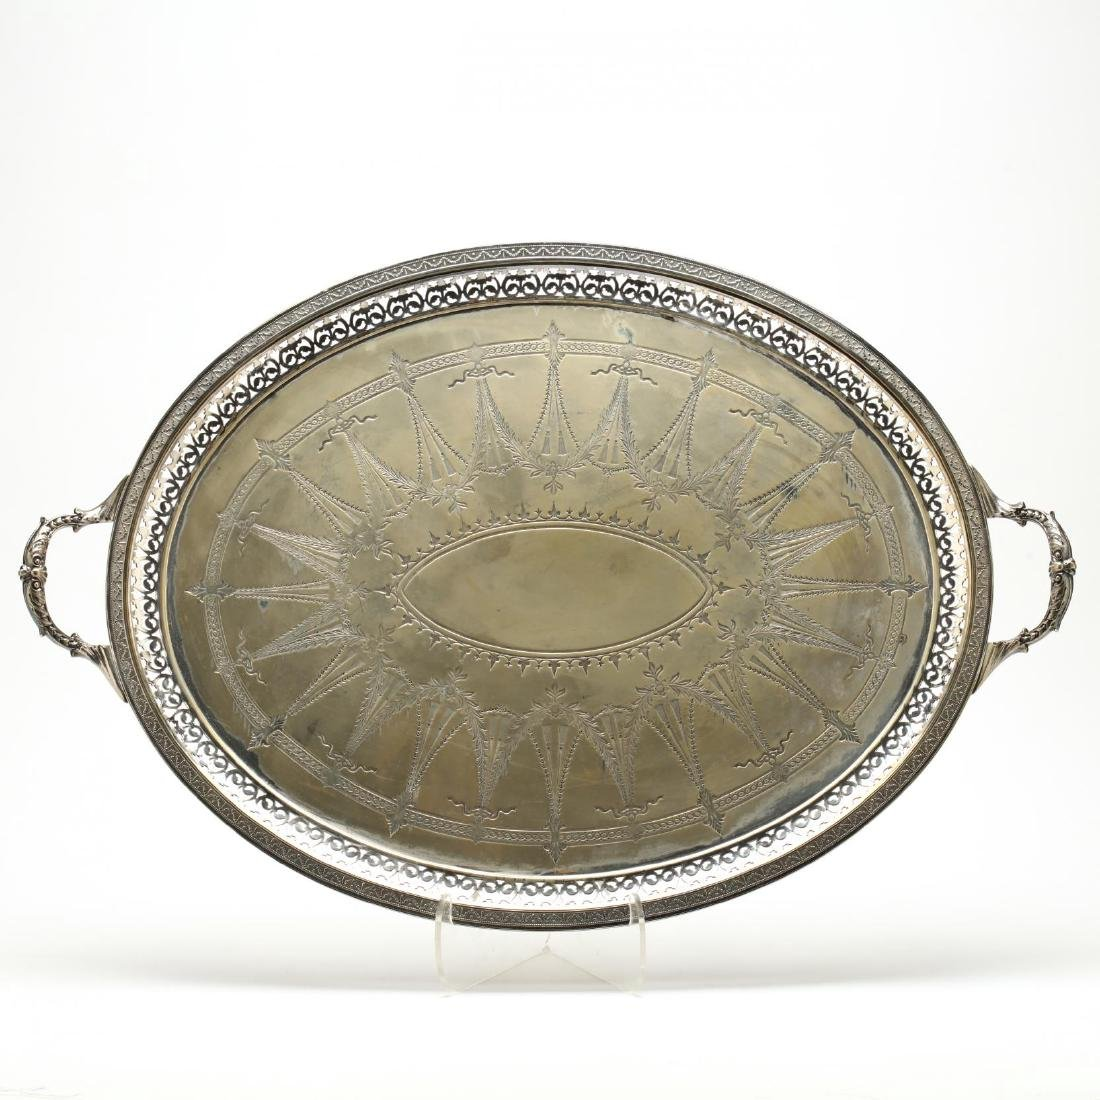 A Large Antique English Silverplate Tray